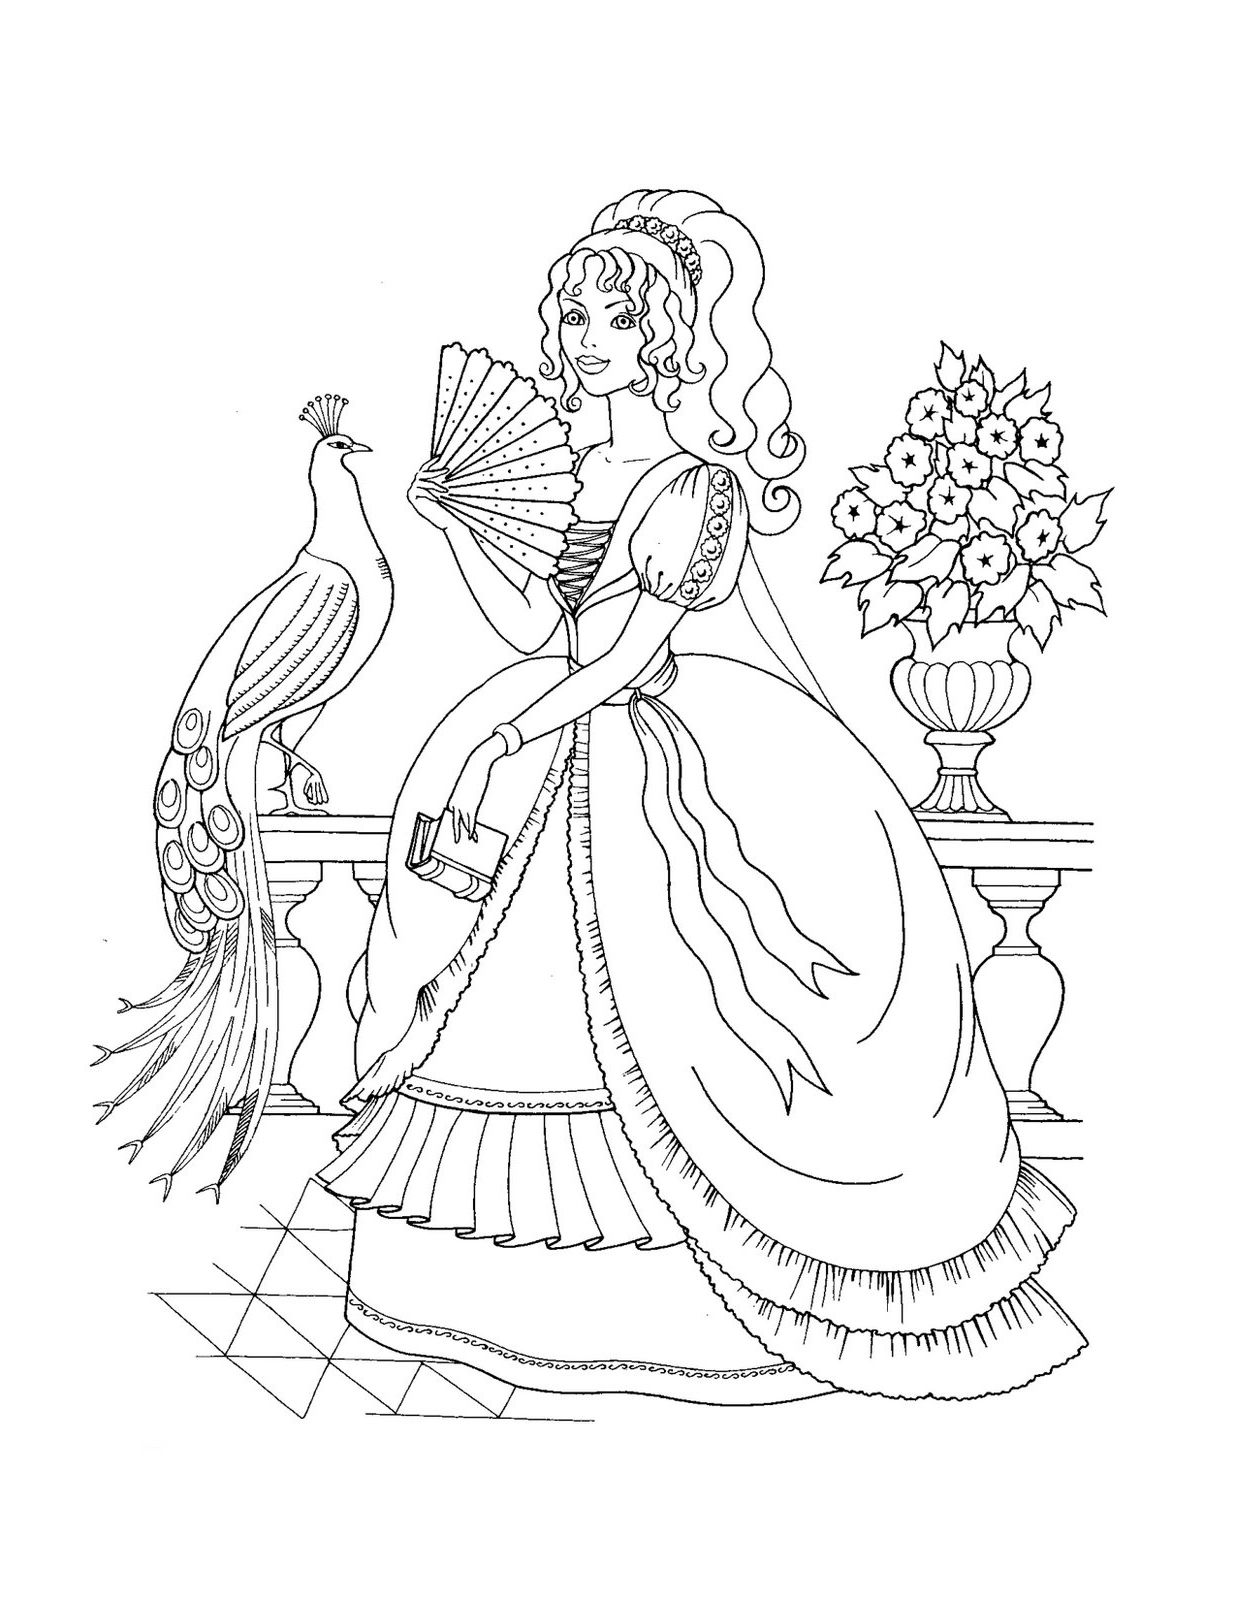 graphic about Printable Princess Picture named Princess Coloring Webpages - Perfect Coloring Web pages For Little ones